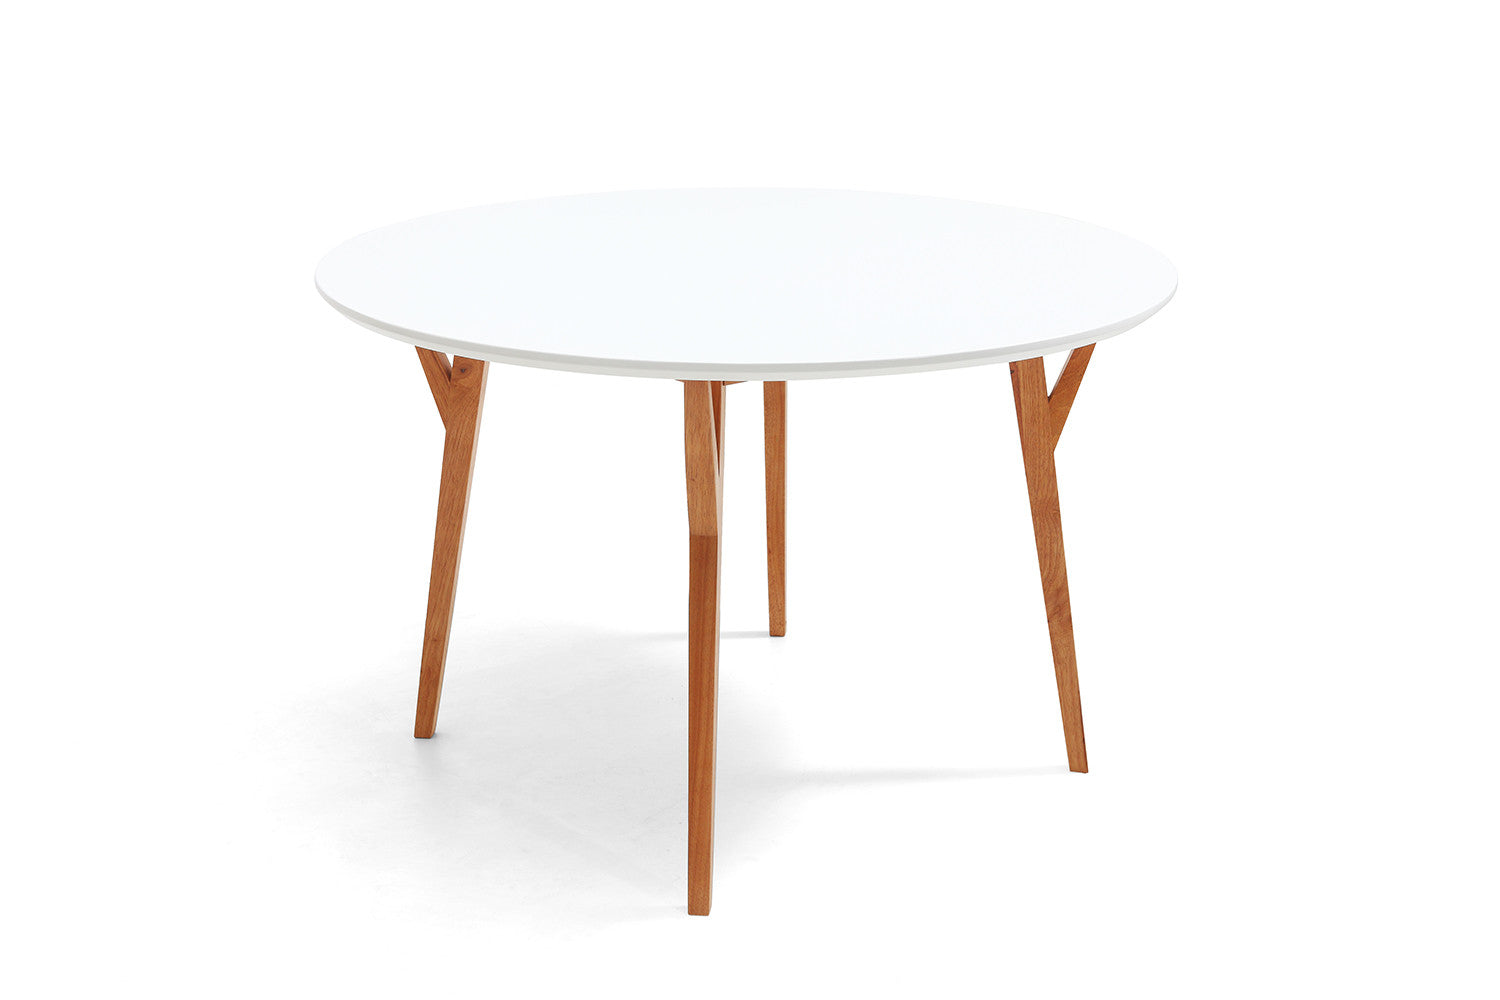 Table de salle manger ronde design scandinave moesa for Photo table a manger